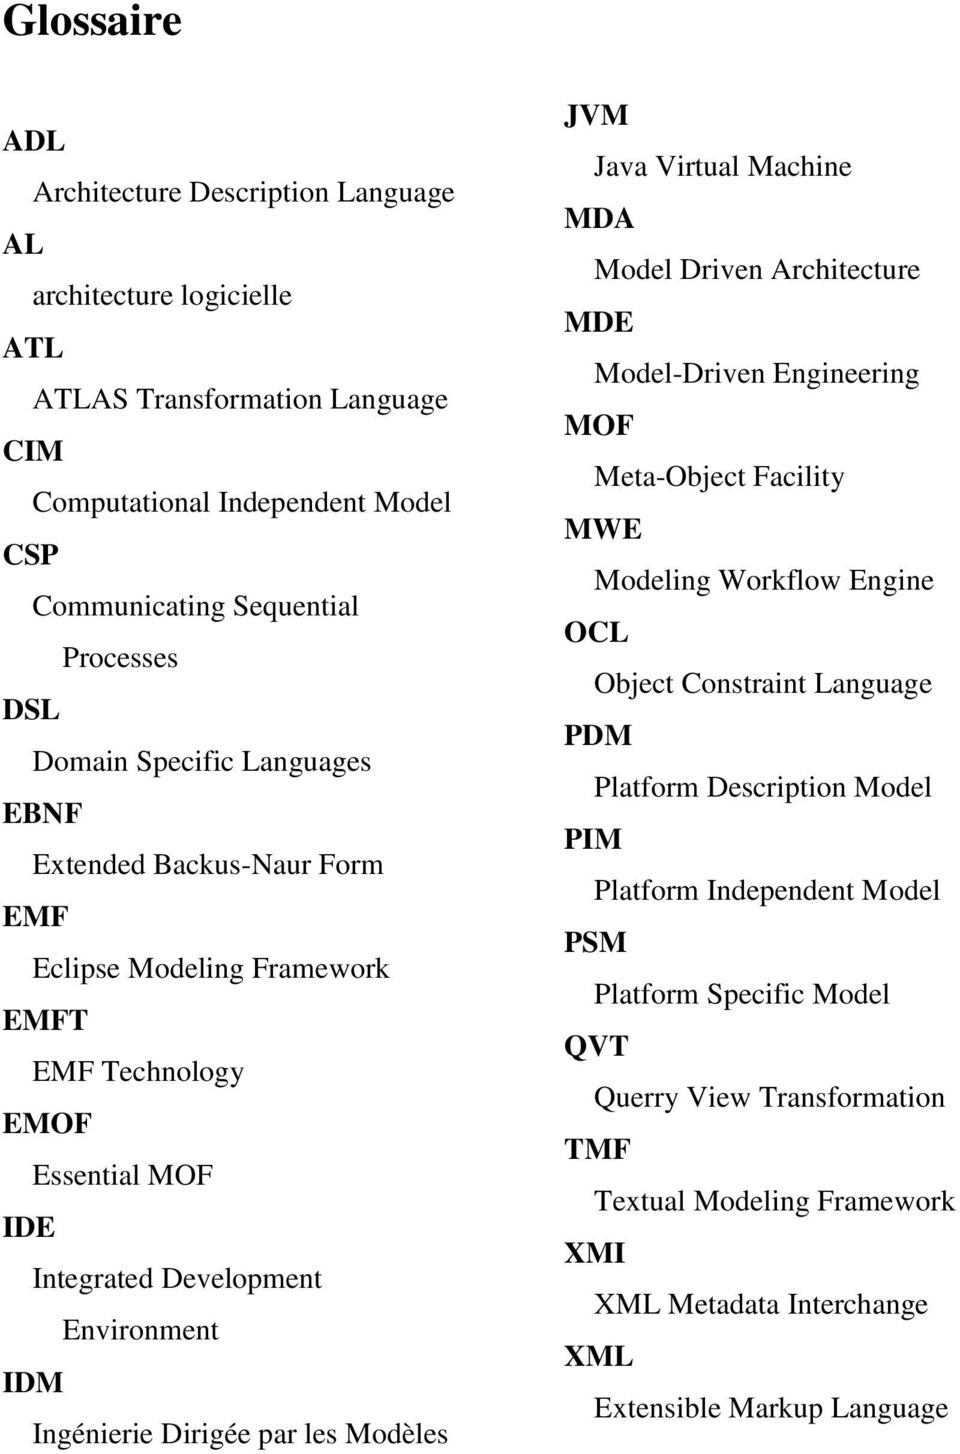 les Modèles JVM Java Virtual Machine MDA Model Driven Architecture MDE Model-Driven Engineering MOF Meta-Object Facility MWE Modeling Workflow Engine OCL Object Constraint Language PDM Platform